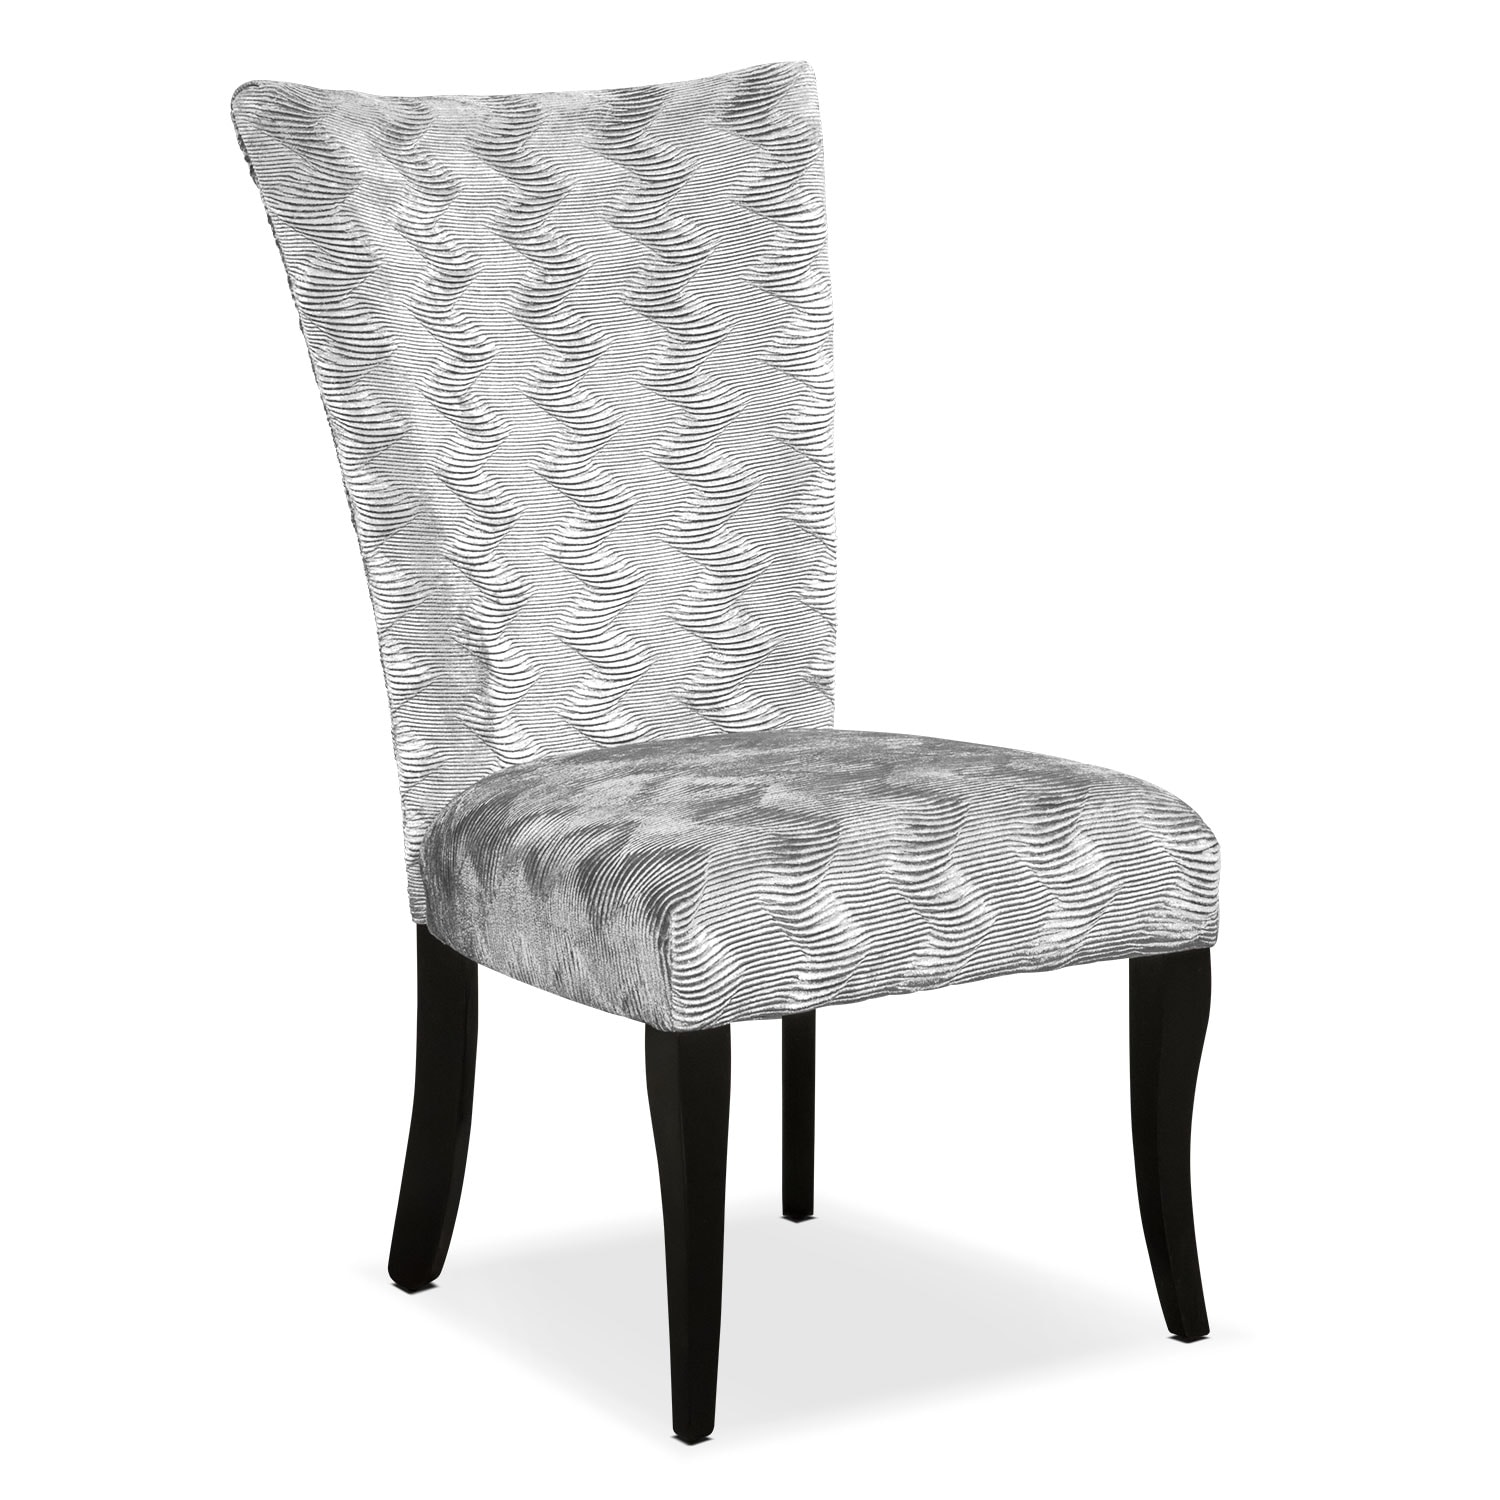 Vibrato Side Chair - Silver